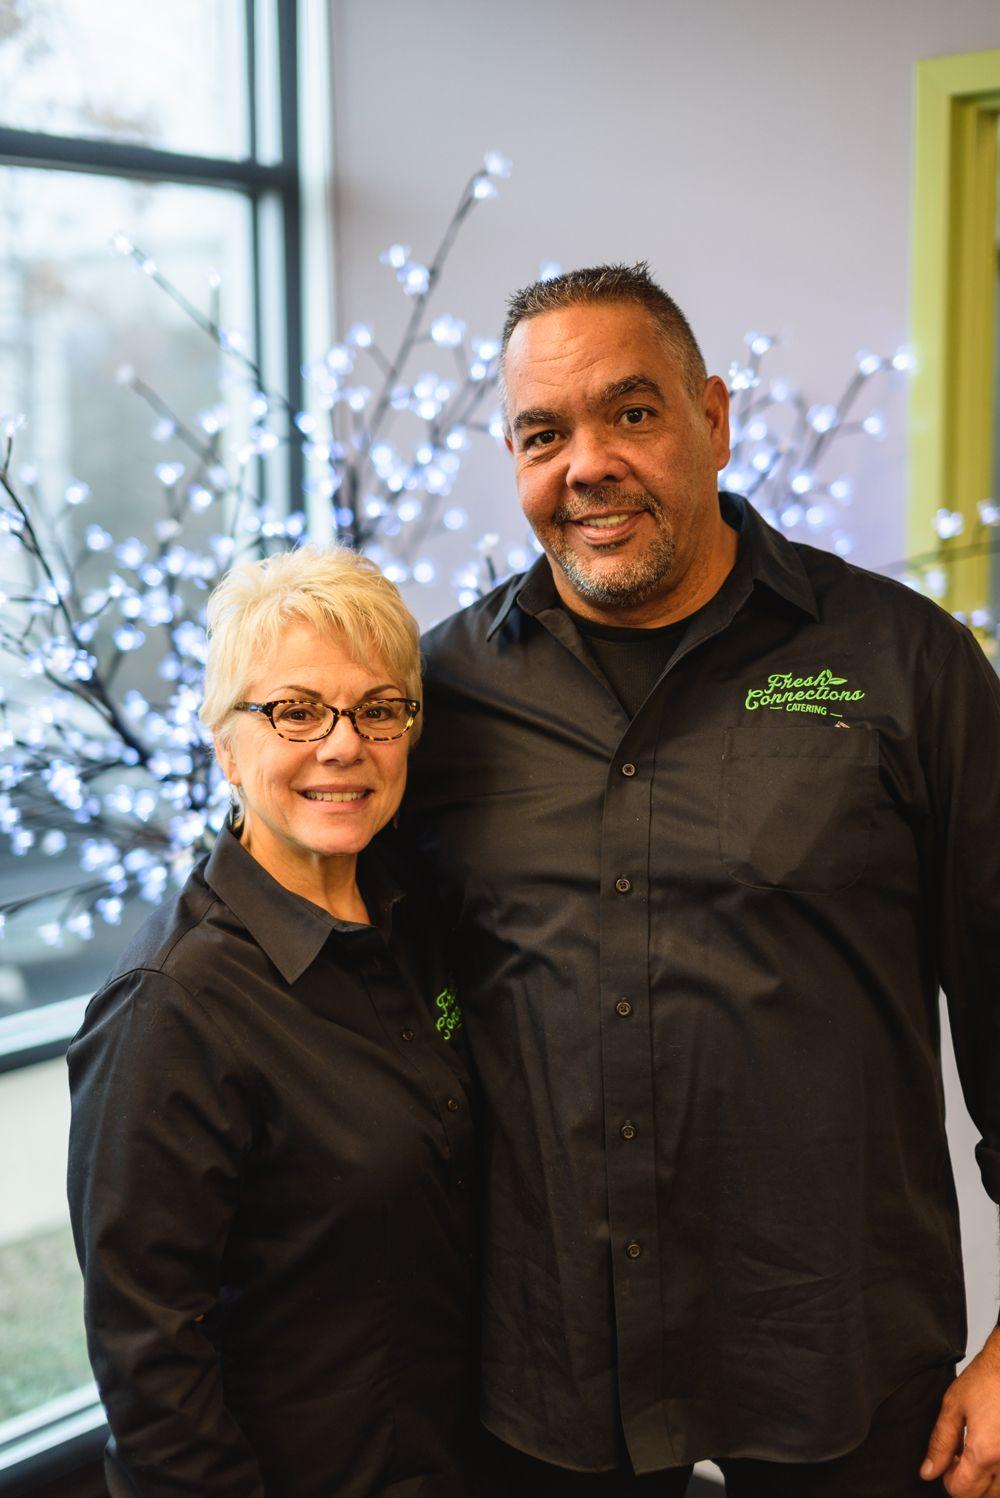 The owners of Fresh Connections Catering providing corporate catering services to Reston VA